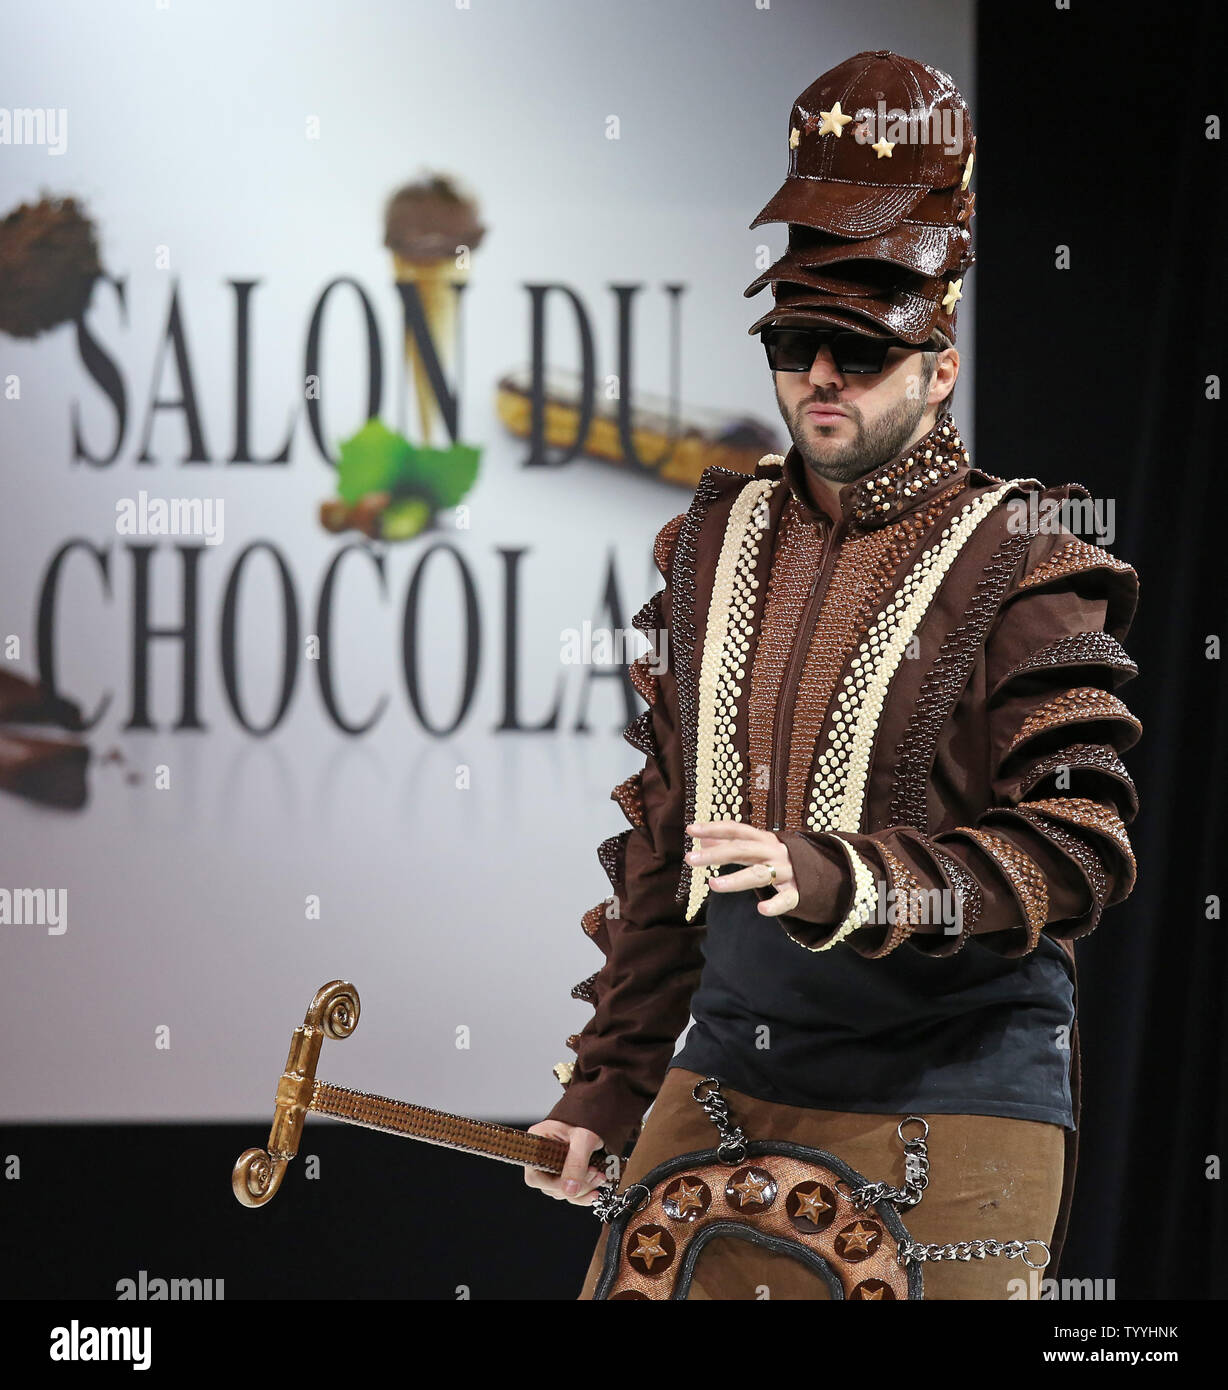 Helmut Fritz Wears A Creation Made With Chocolate During A Fashion Show At The Inauguration Of